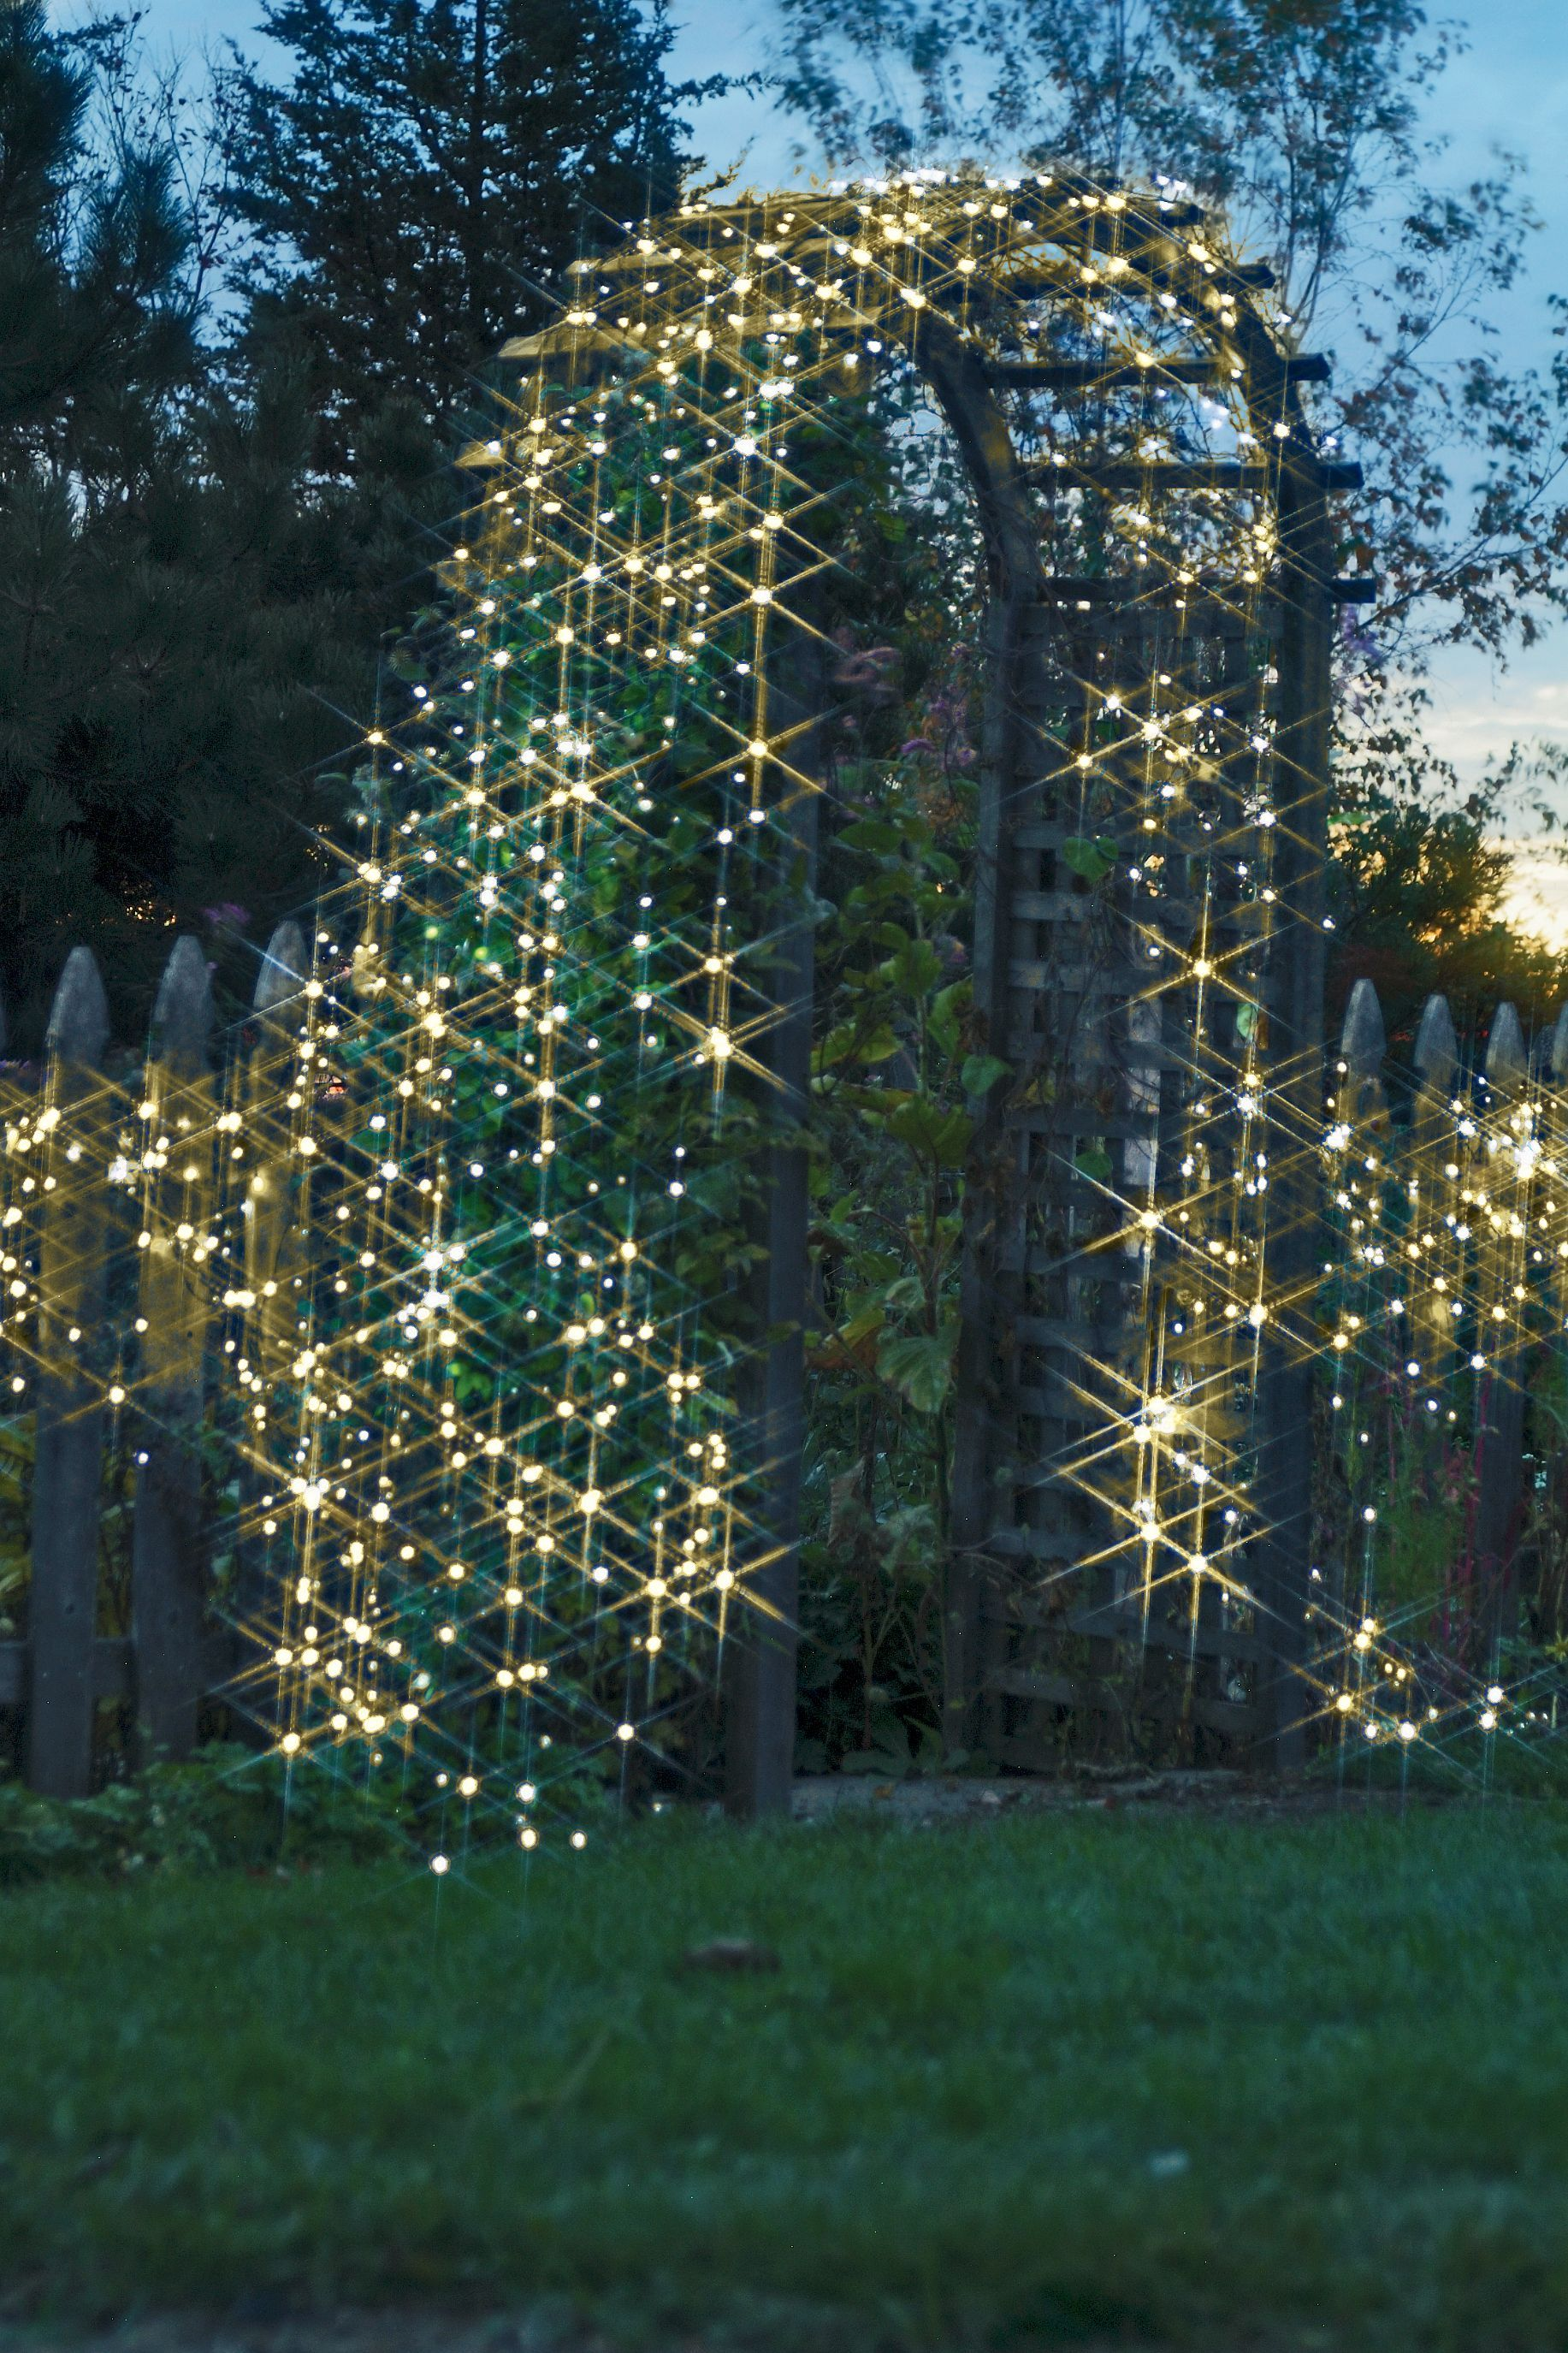 Battery operated led string lights outdoor accents pinterest add the magic of light anytime anywhere with these indooroutdoor battery operated string lights with 200 warm white led bulbs in a string aloadofball Choice Image